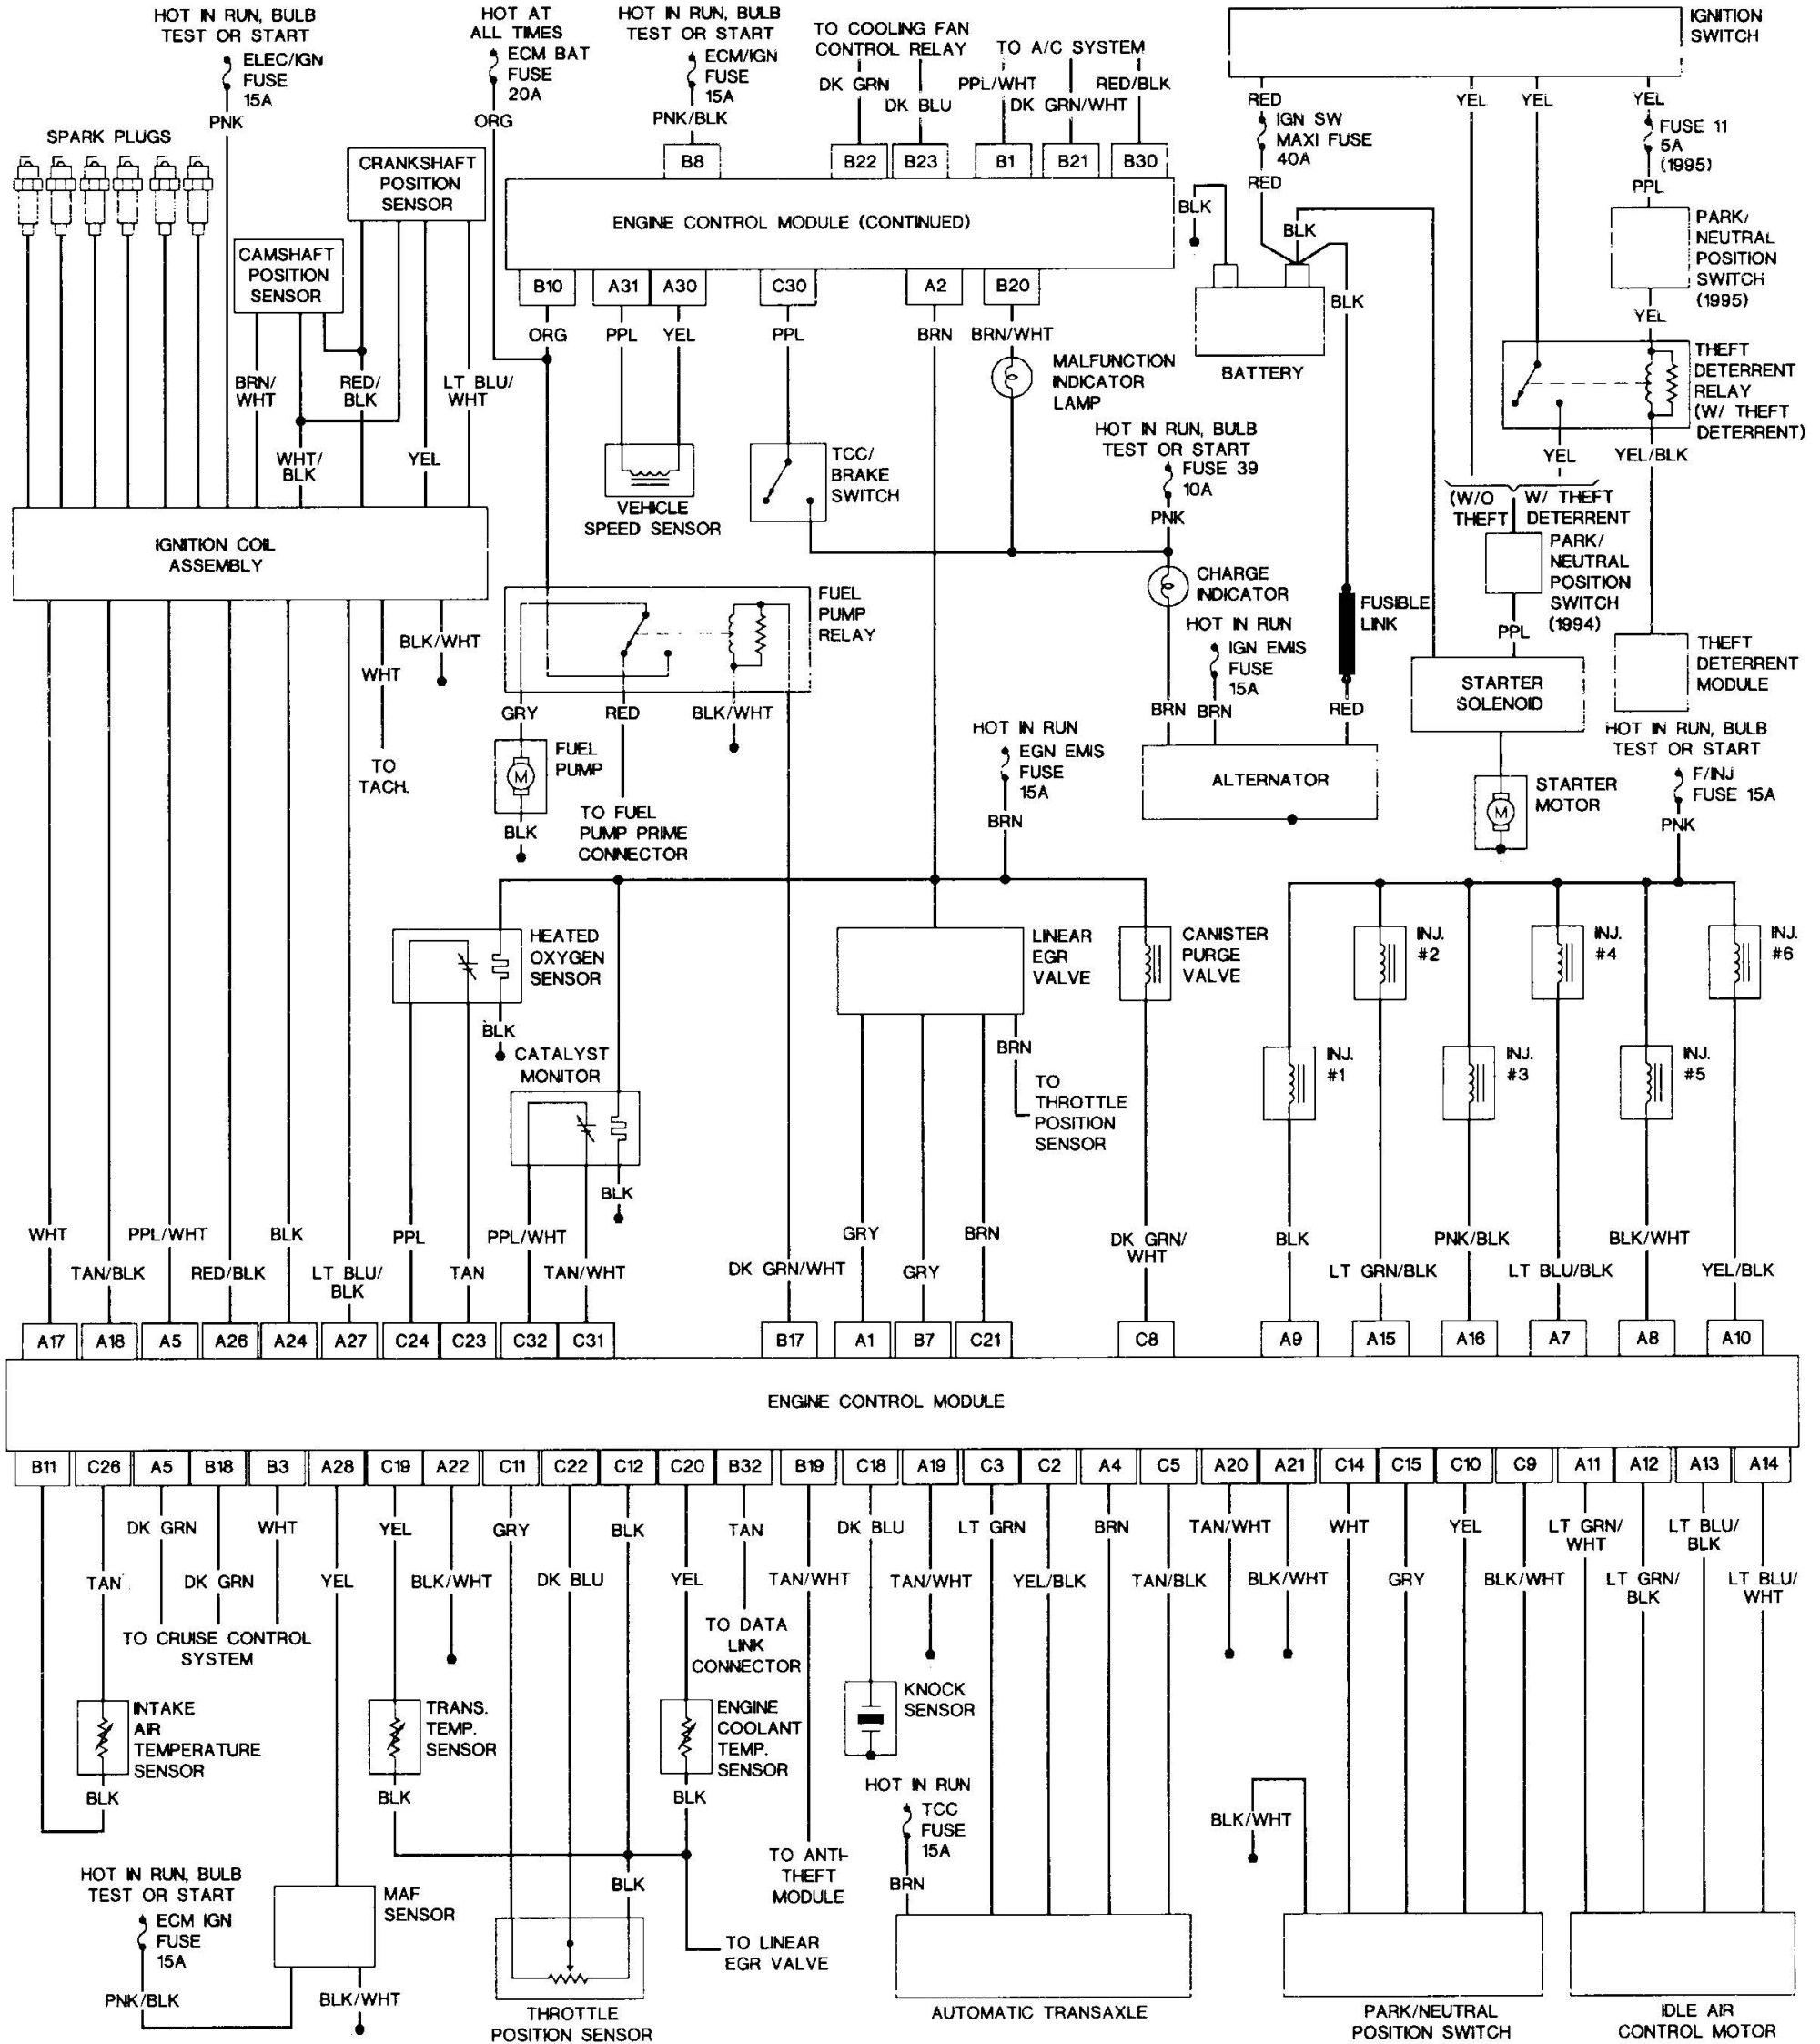 hight resolution of 1999 malibu 3 1 engine diagram wiring diagram wiring diagram 1995 chevy lumina engine diagram 1955 chevy wiring